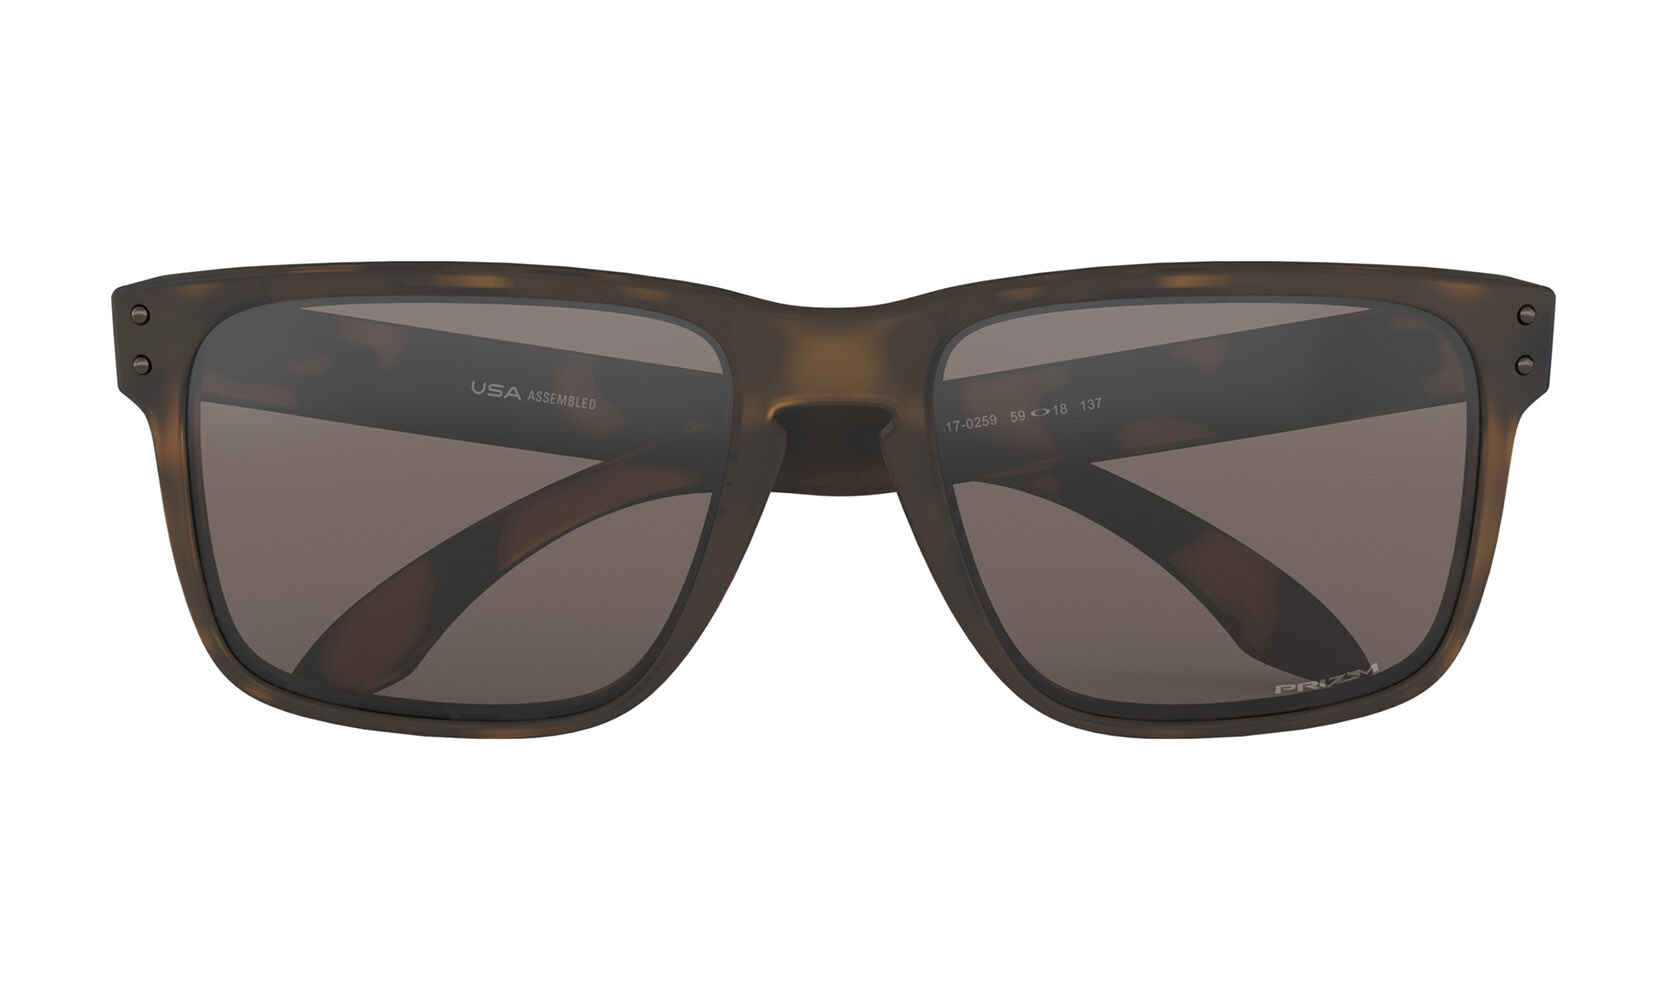 cea061869b0 OAKLEY HOLBROOK XL - MATTE BROWN TORTOISE W  PRIZM BLACK - Mens-Accessories    Sequence Surf Shop - OAKLEY S18